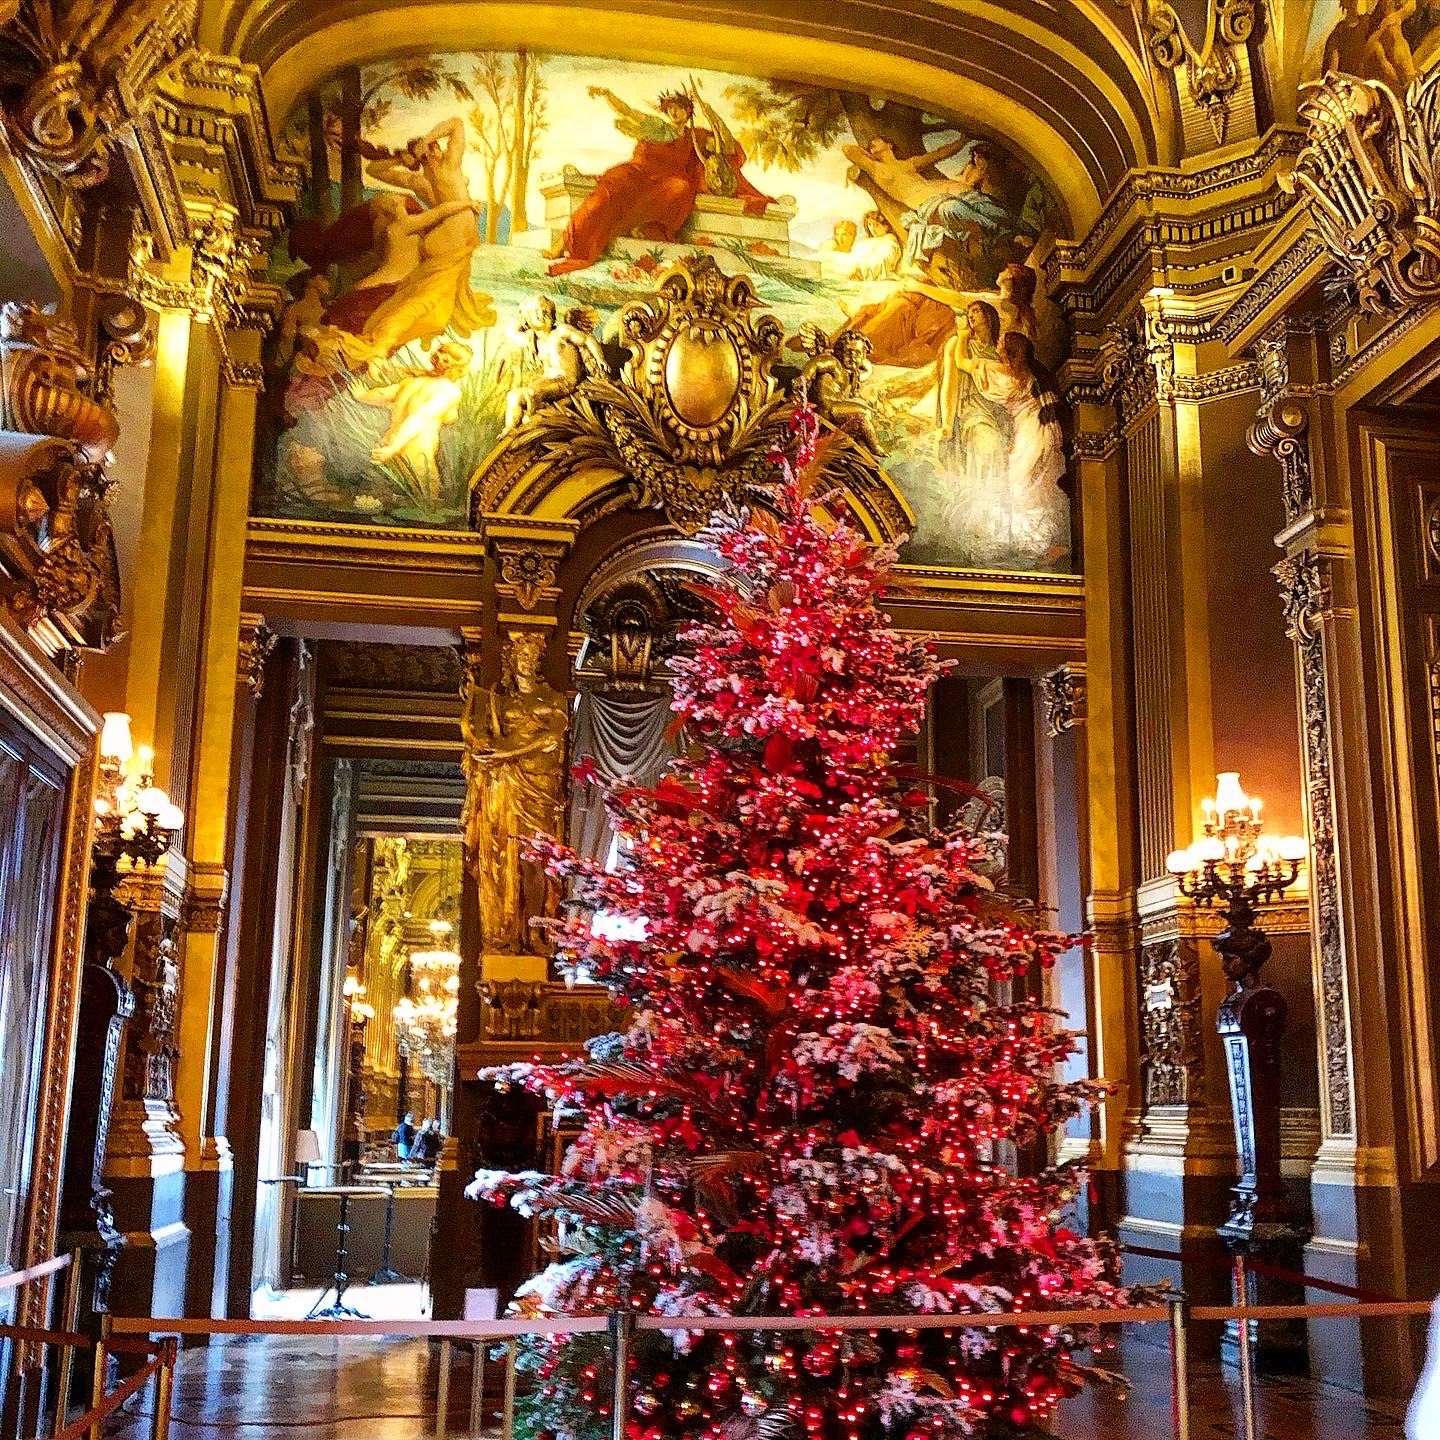 Paris Open On Christmas 2021 Paris At The Holidays Plus Optional Alsace Christmas Markets Extension French Affaires